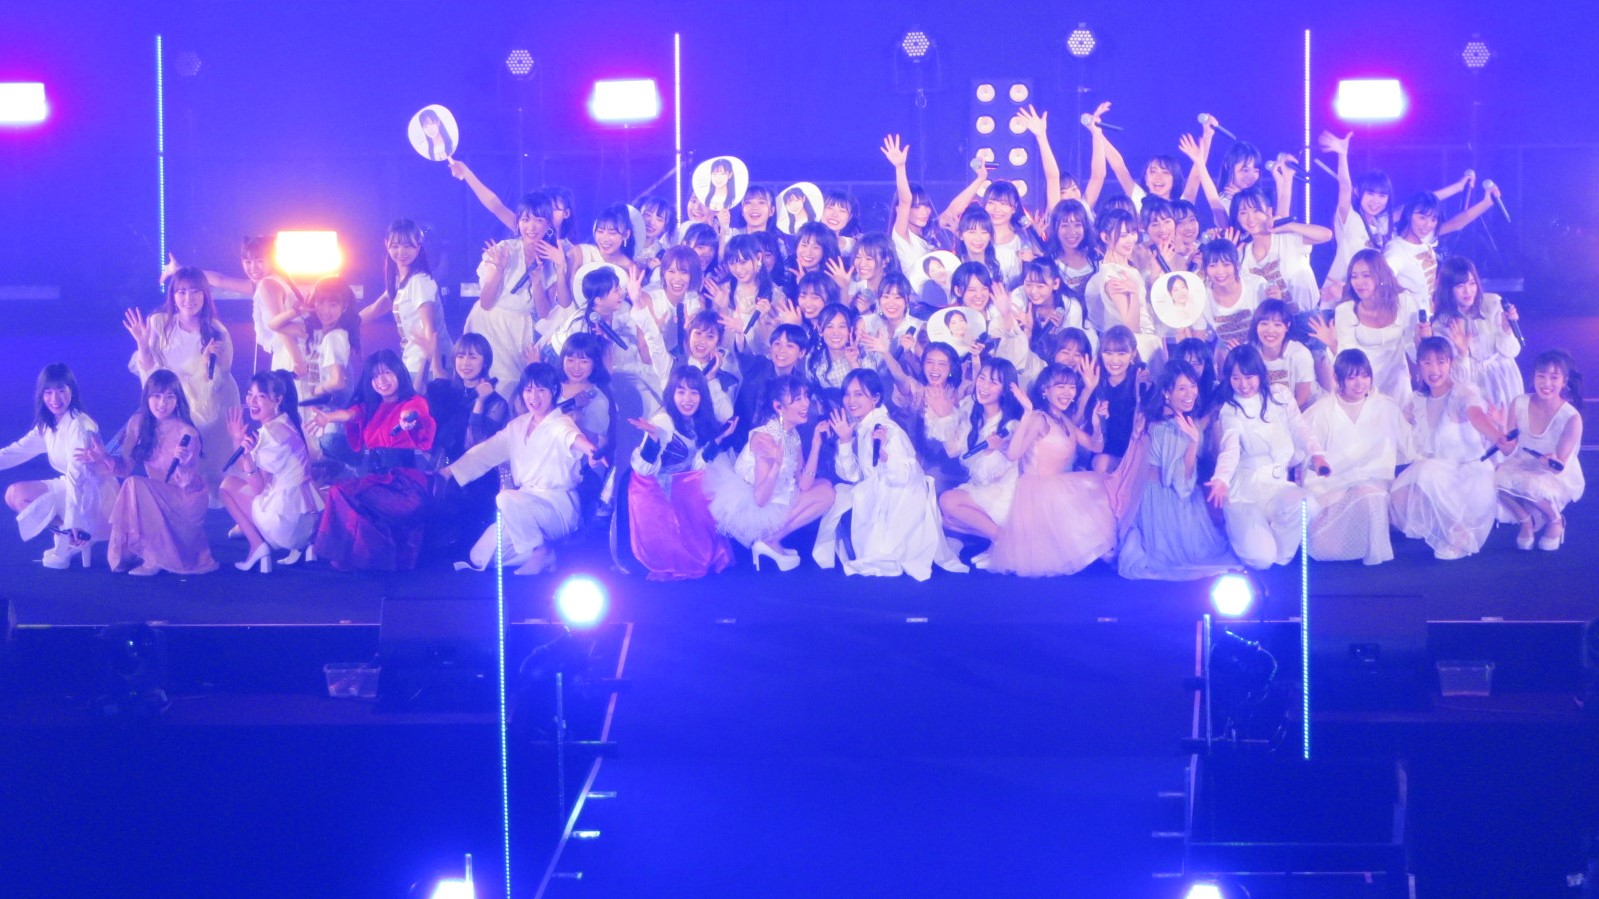 【NMB48】NMB48 10th Anniversary LIVE~心を一つに、One for all, All for one~セットリストとライブ画像など。